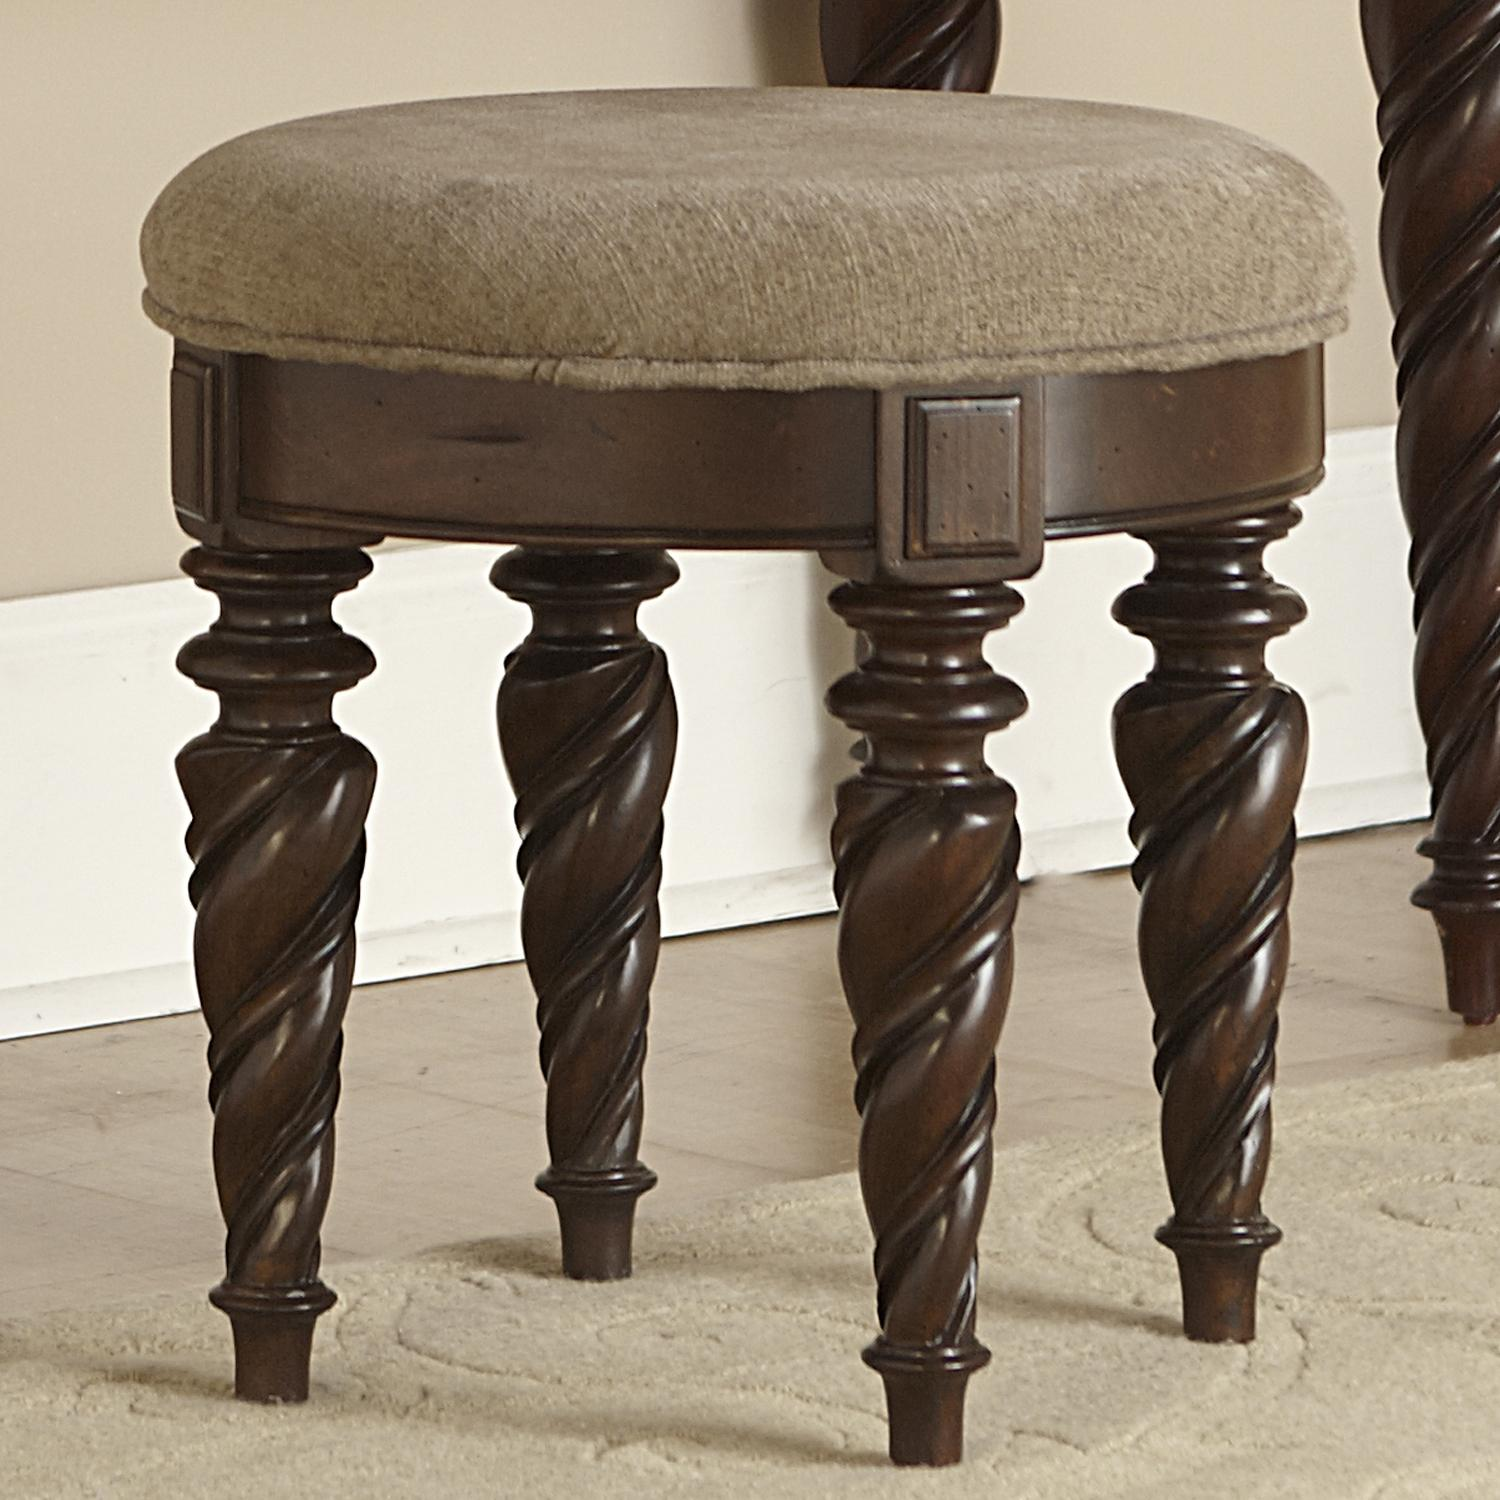 Liberty Furniture Arbor Place Vanity Stool - Item Number: 575-BR99